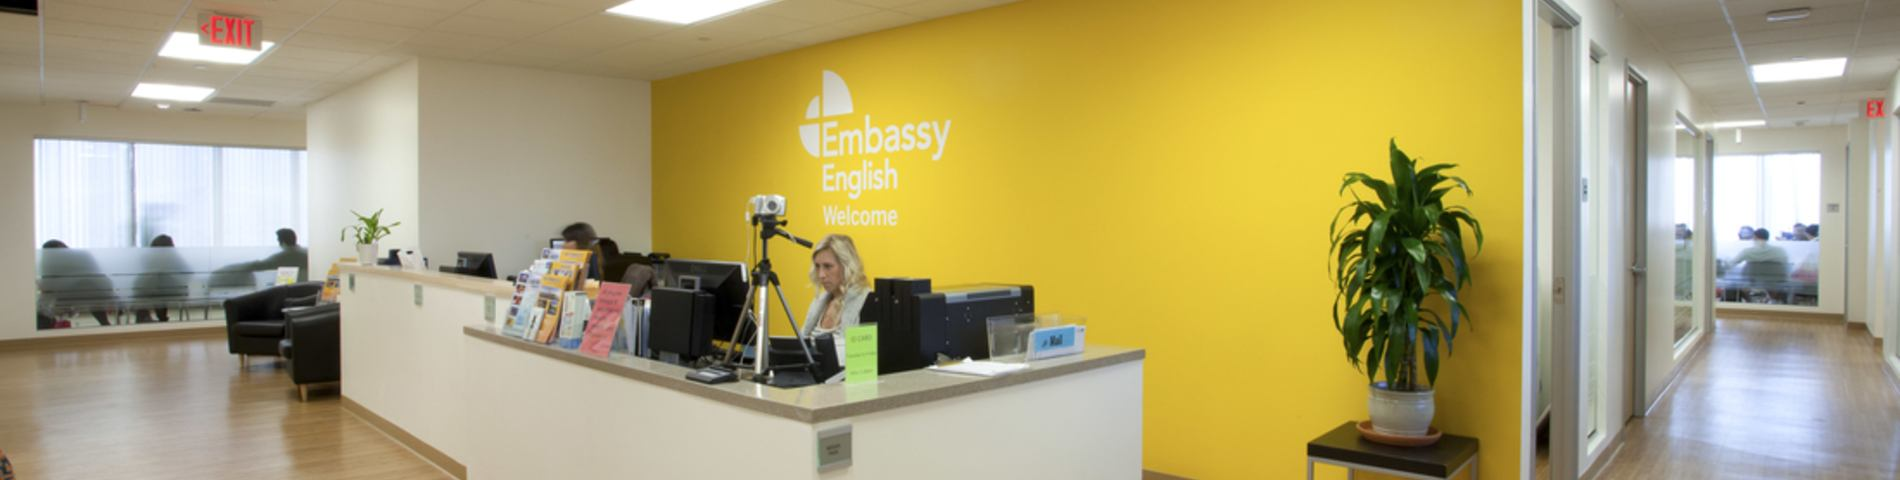 Embassy English picture 1